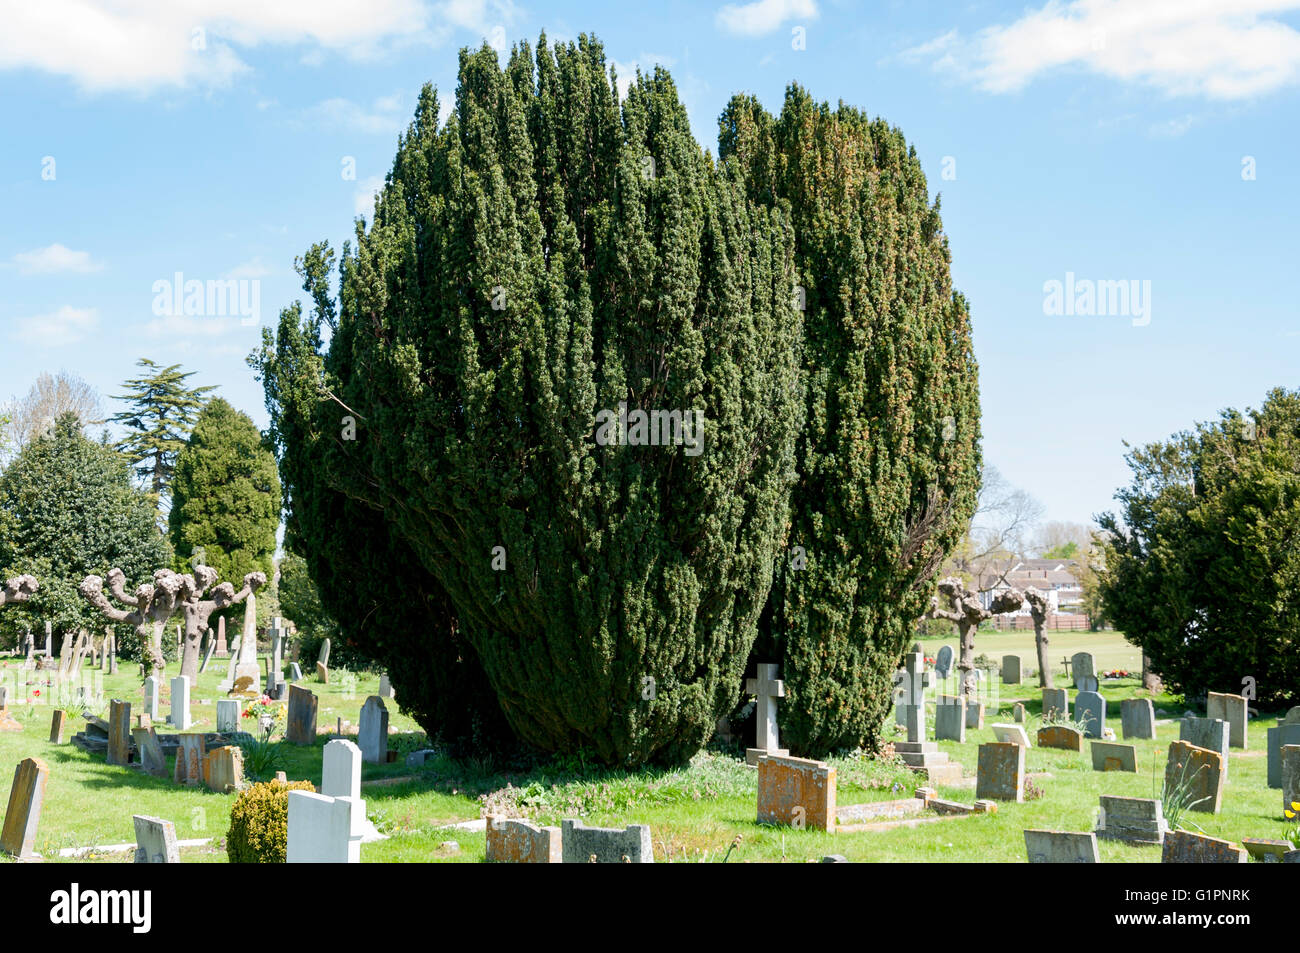 European Yew tree (Taxus baccata) in St Mary's churchyard, Church Road, Thame, Oxfordshire, England, United - Stock Image